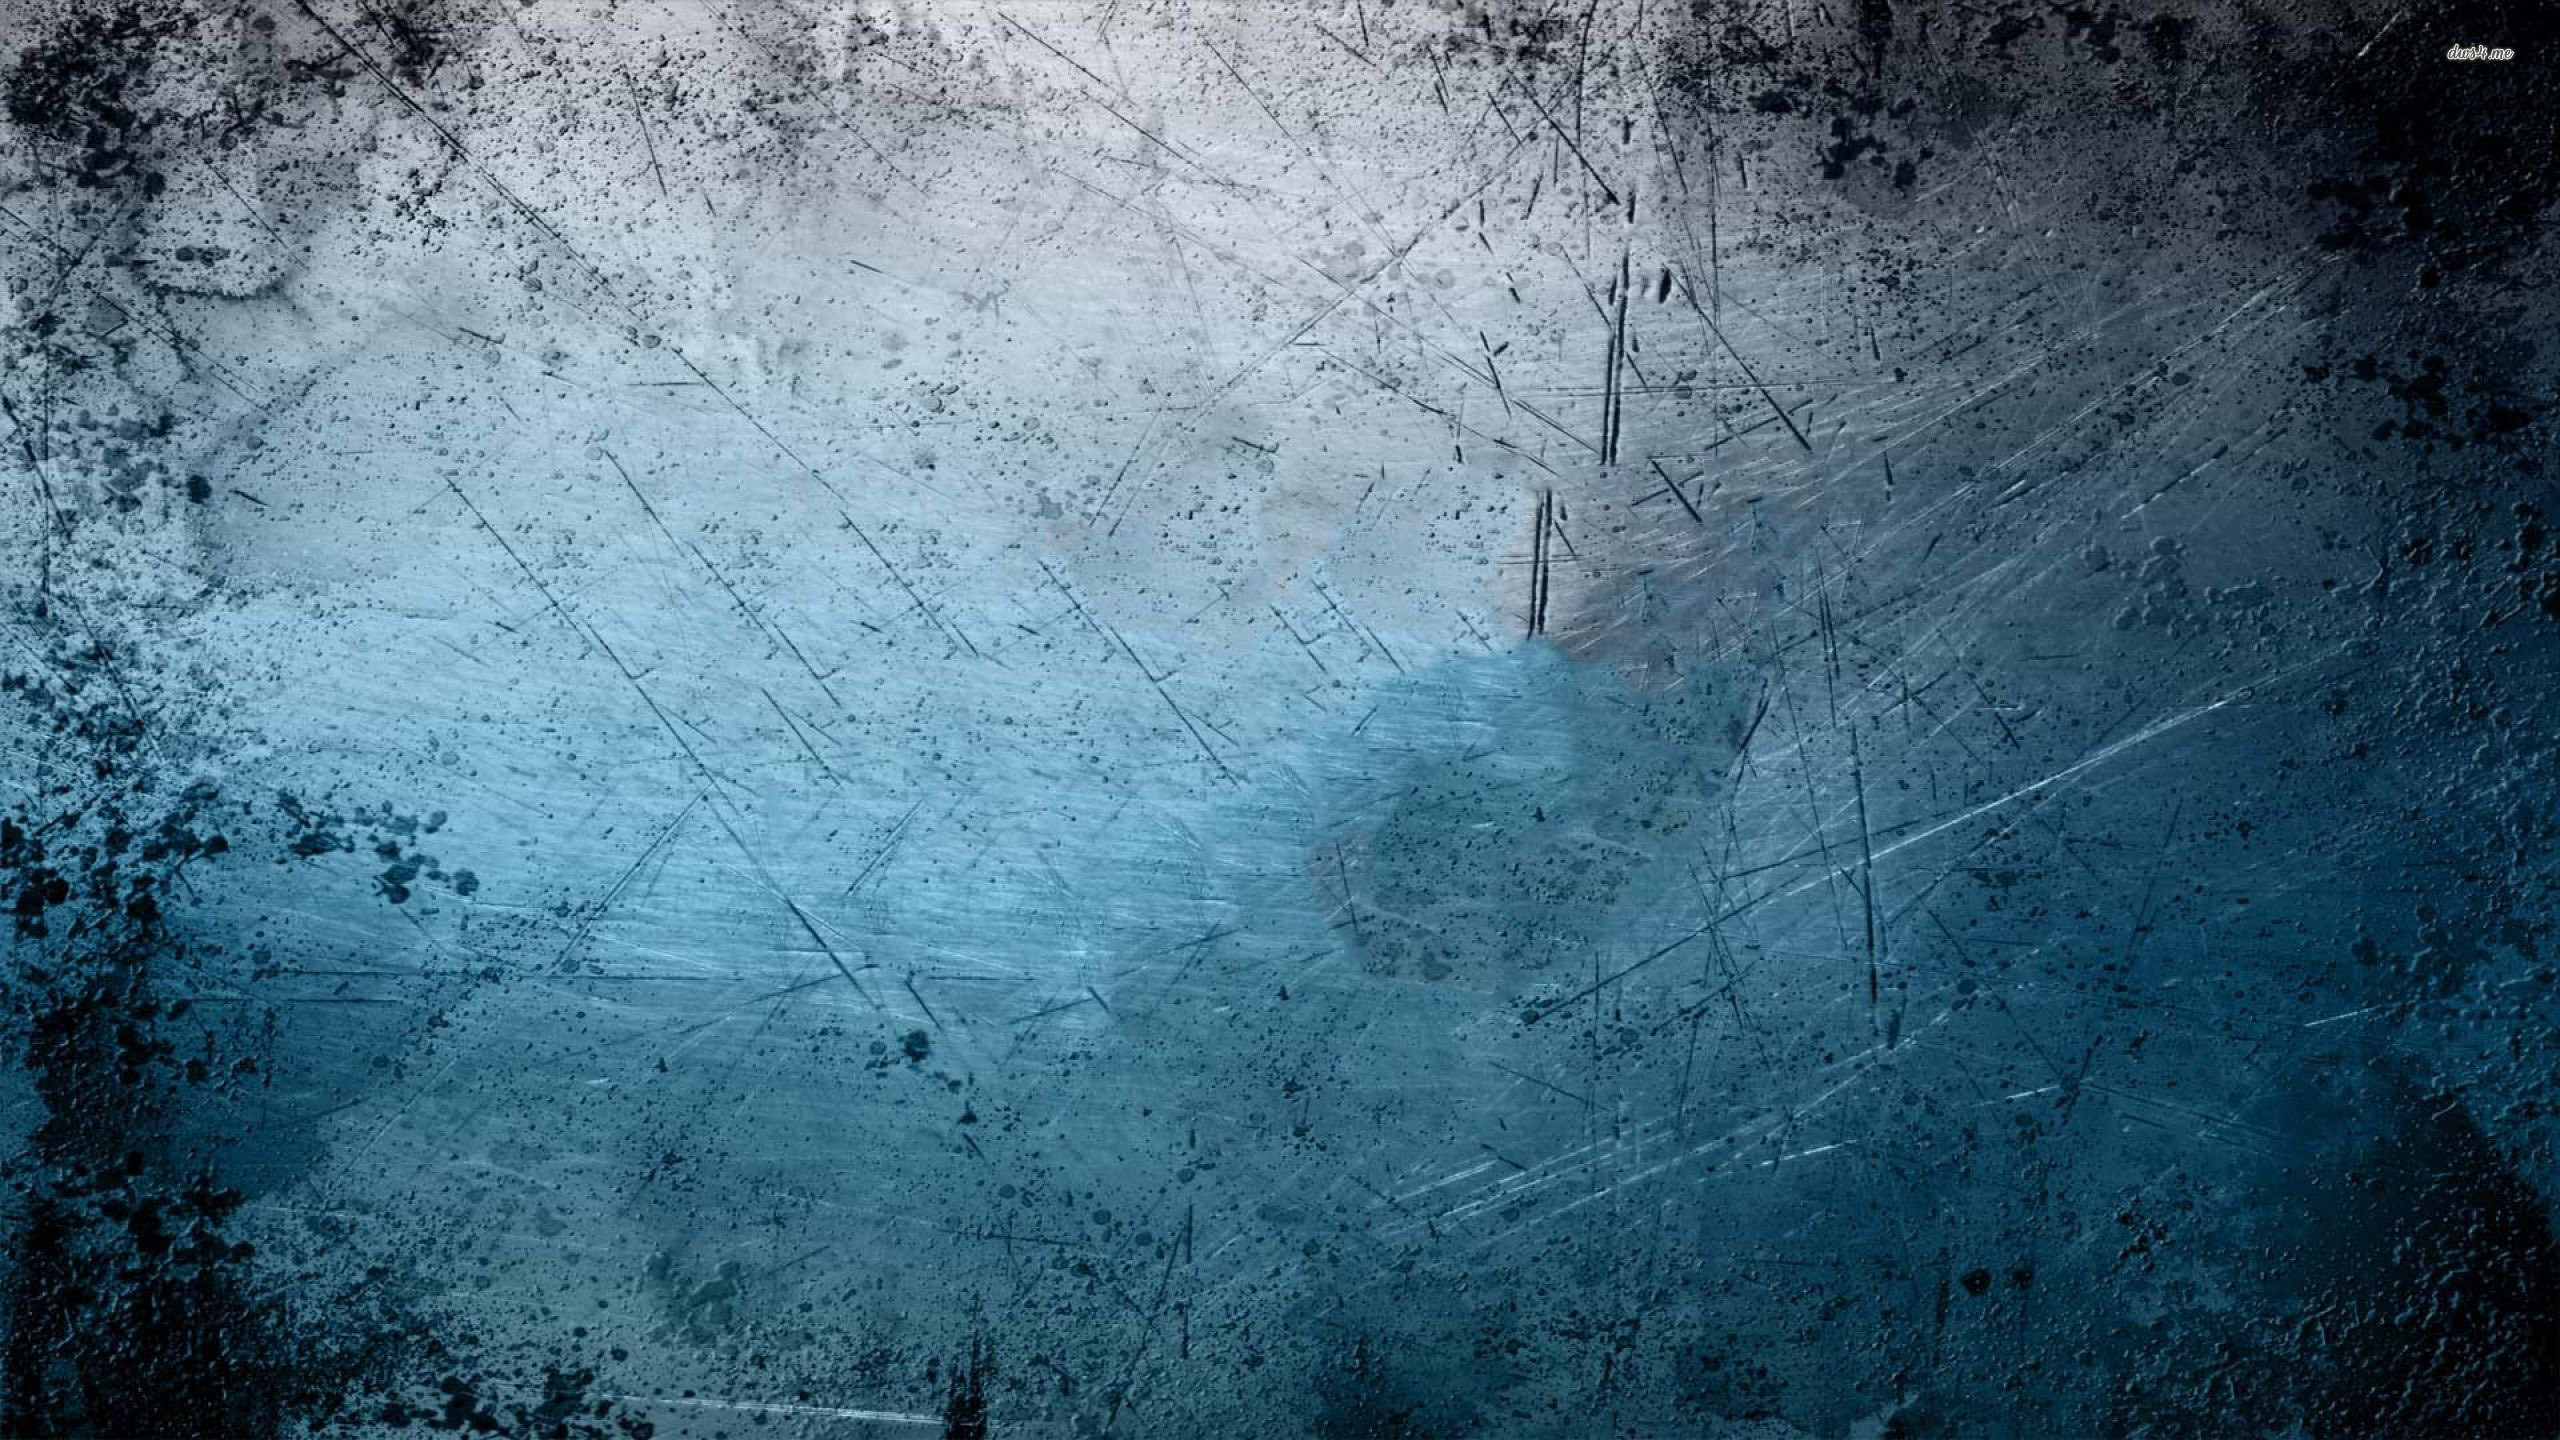 Res: 2560x1440, ... Name22123-blue-scratched-texture--abstract-wallpaper-e1458771894810.jpg  ...